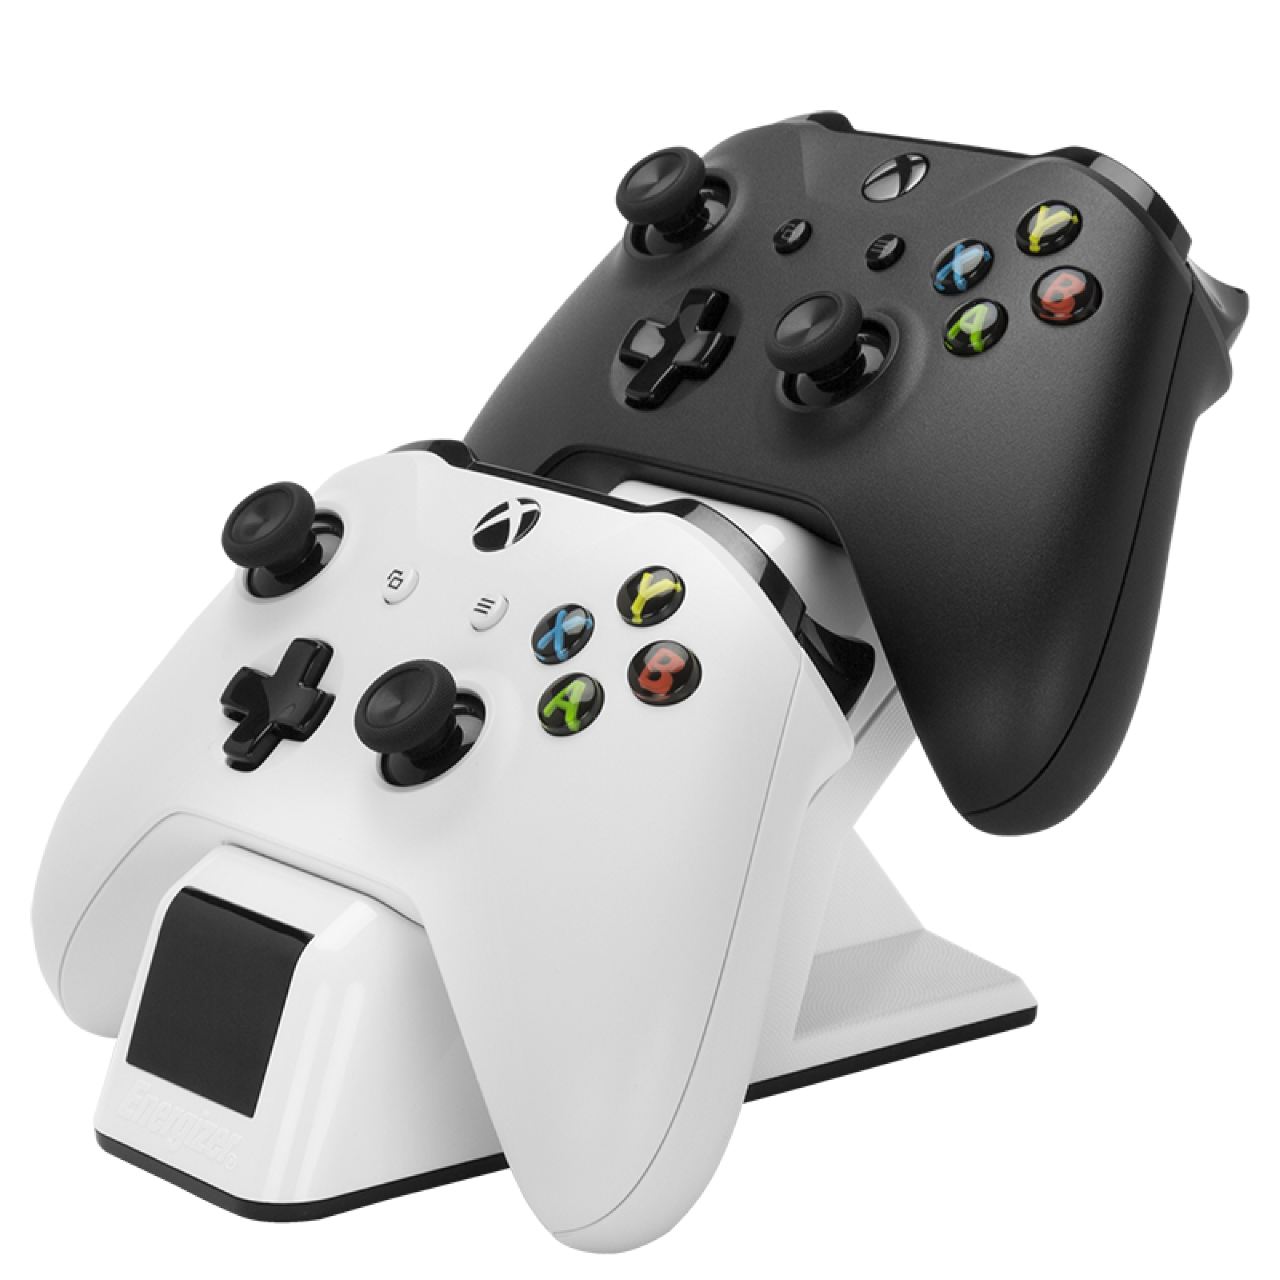 Microsoft Xbox ONE Charge System Energizer PDP White(зарядка плюс 2 акумулятори)